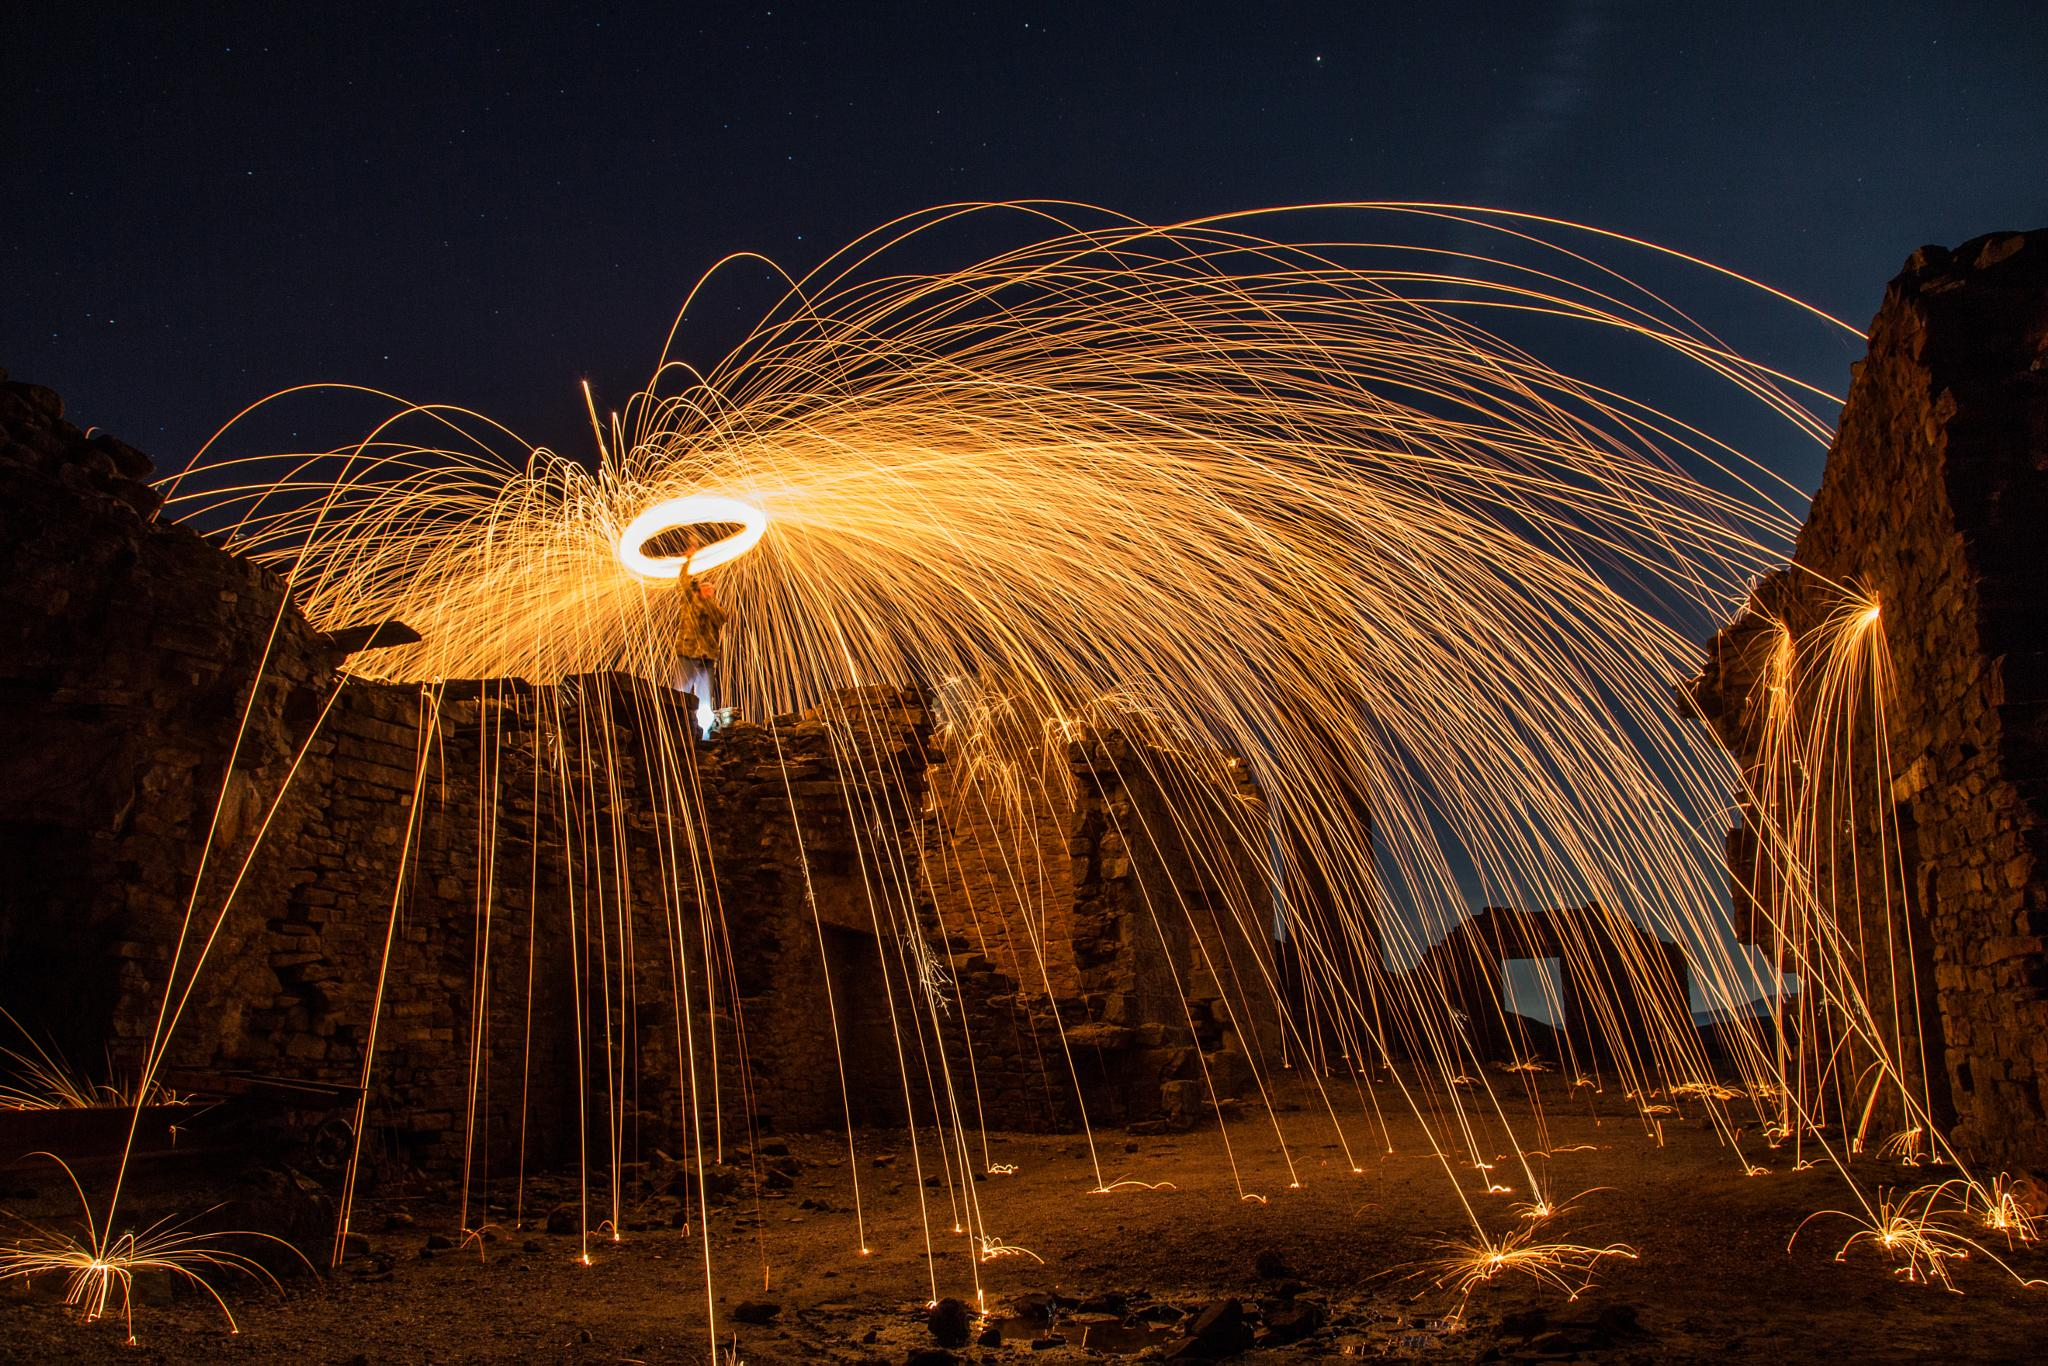 Steel Wool Spinning by Chris Taylor